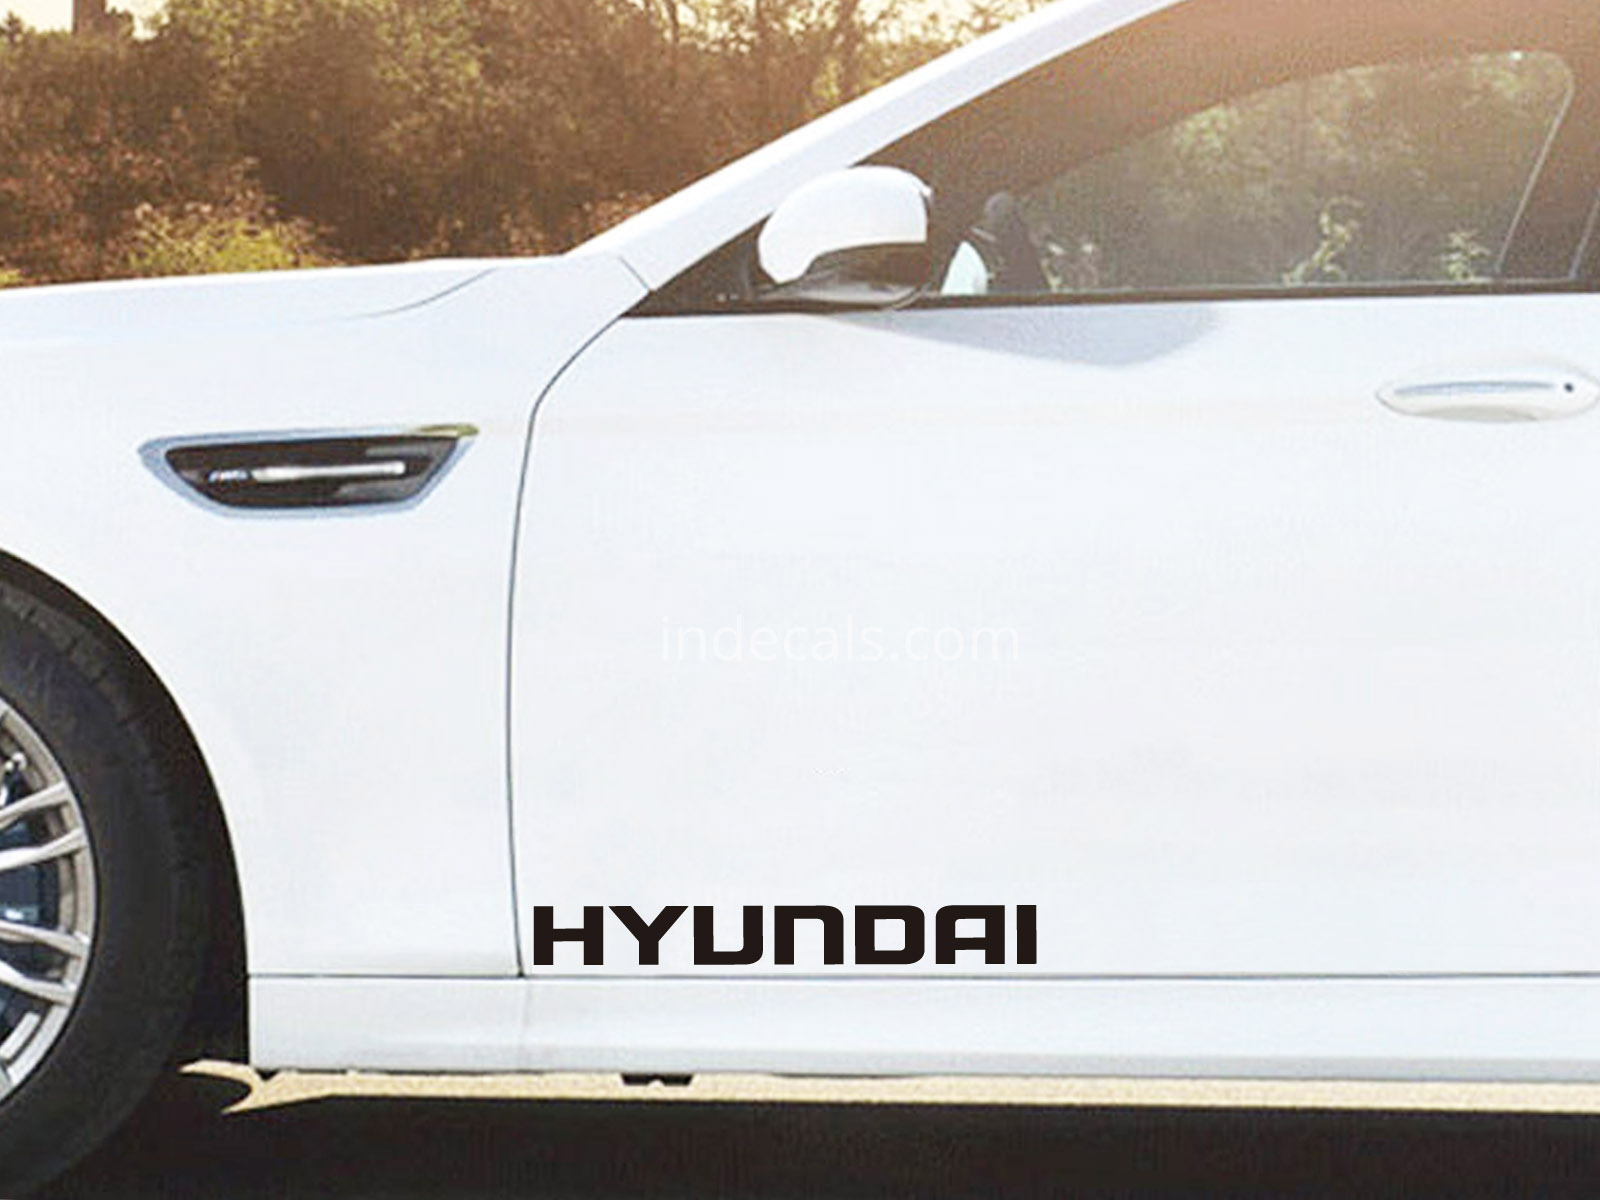 2 x Hyundai Stickers for Doors Large - Black